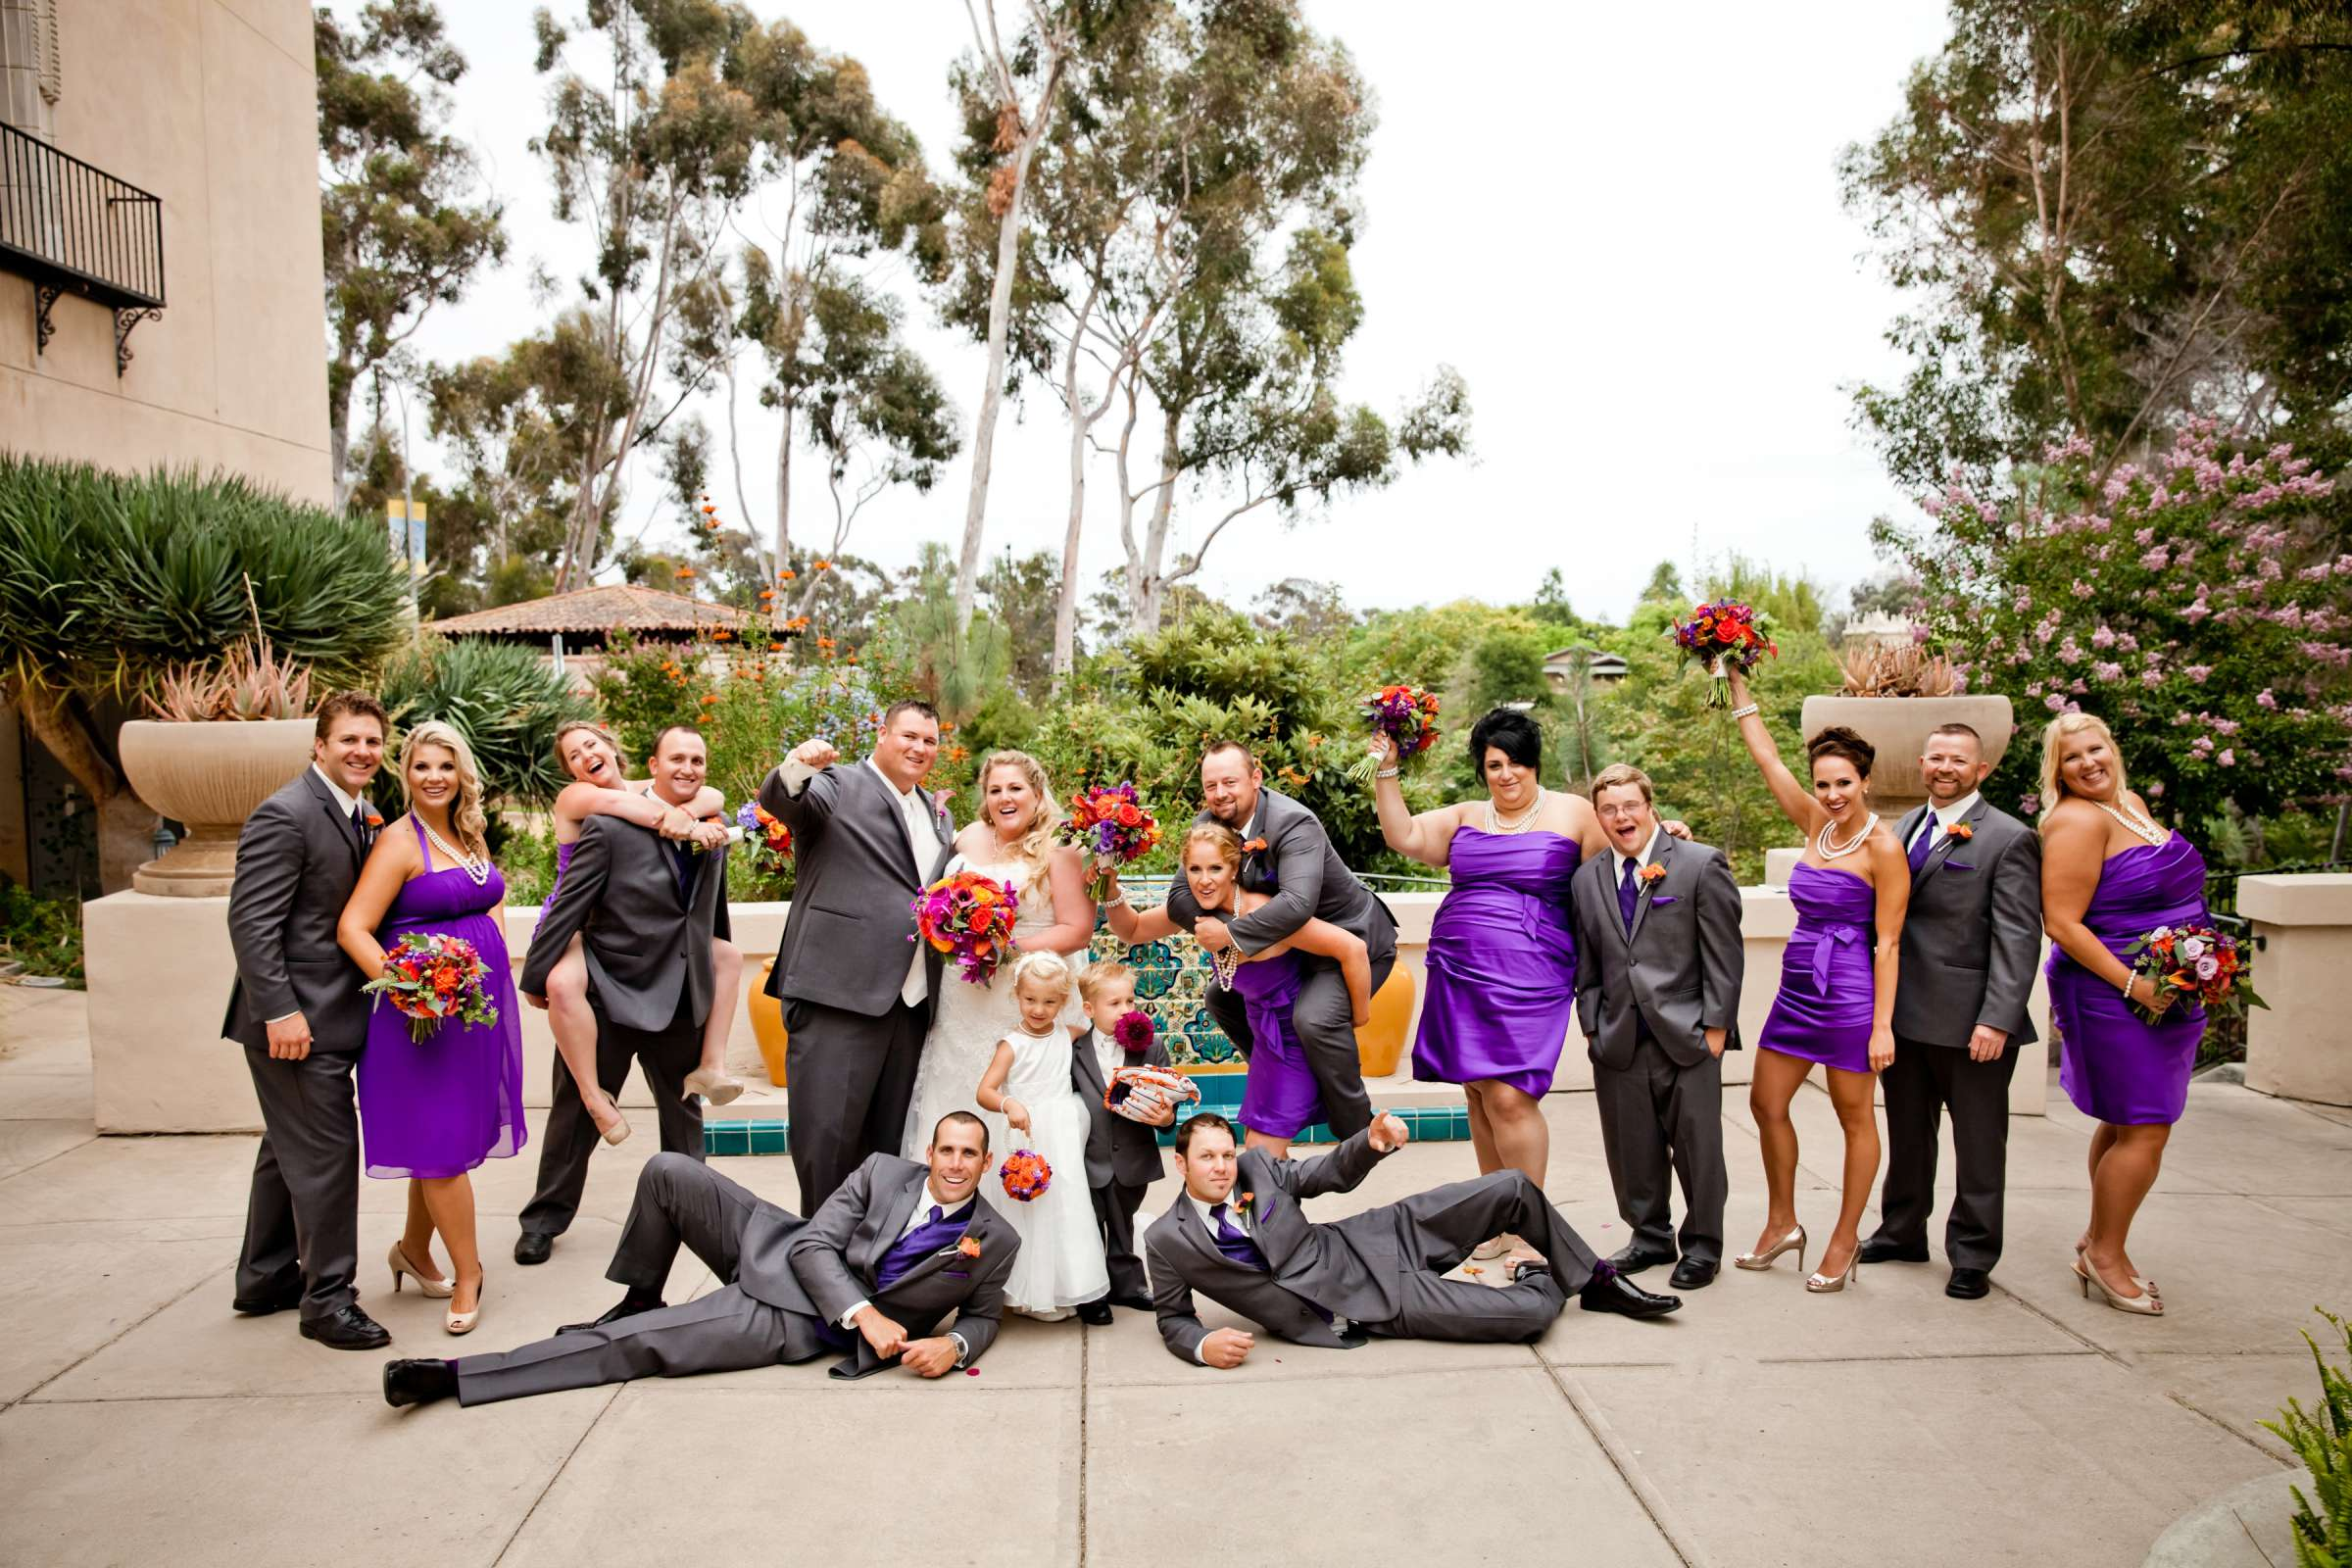 The Prado Wedding coordinated by Monarch Weddings, Eileen and Robbie Wedding Photo #15 by True Photography